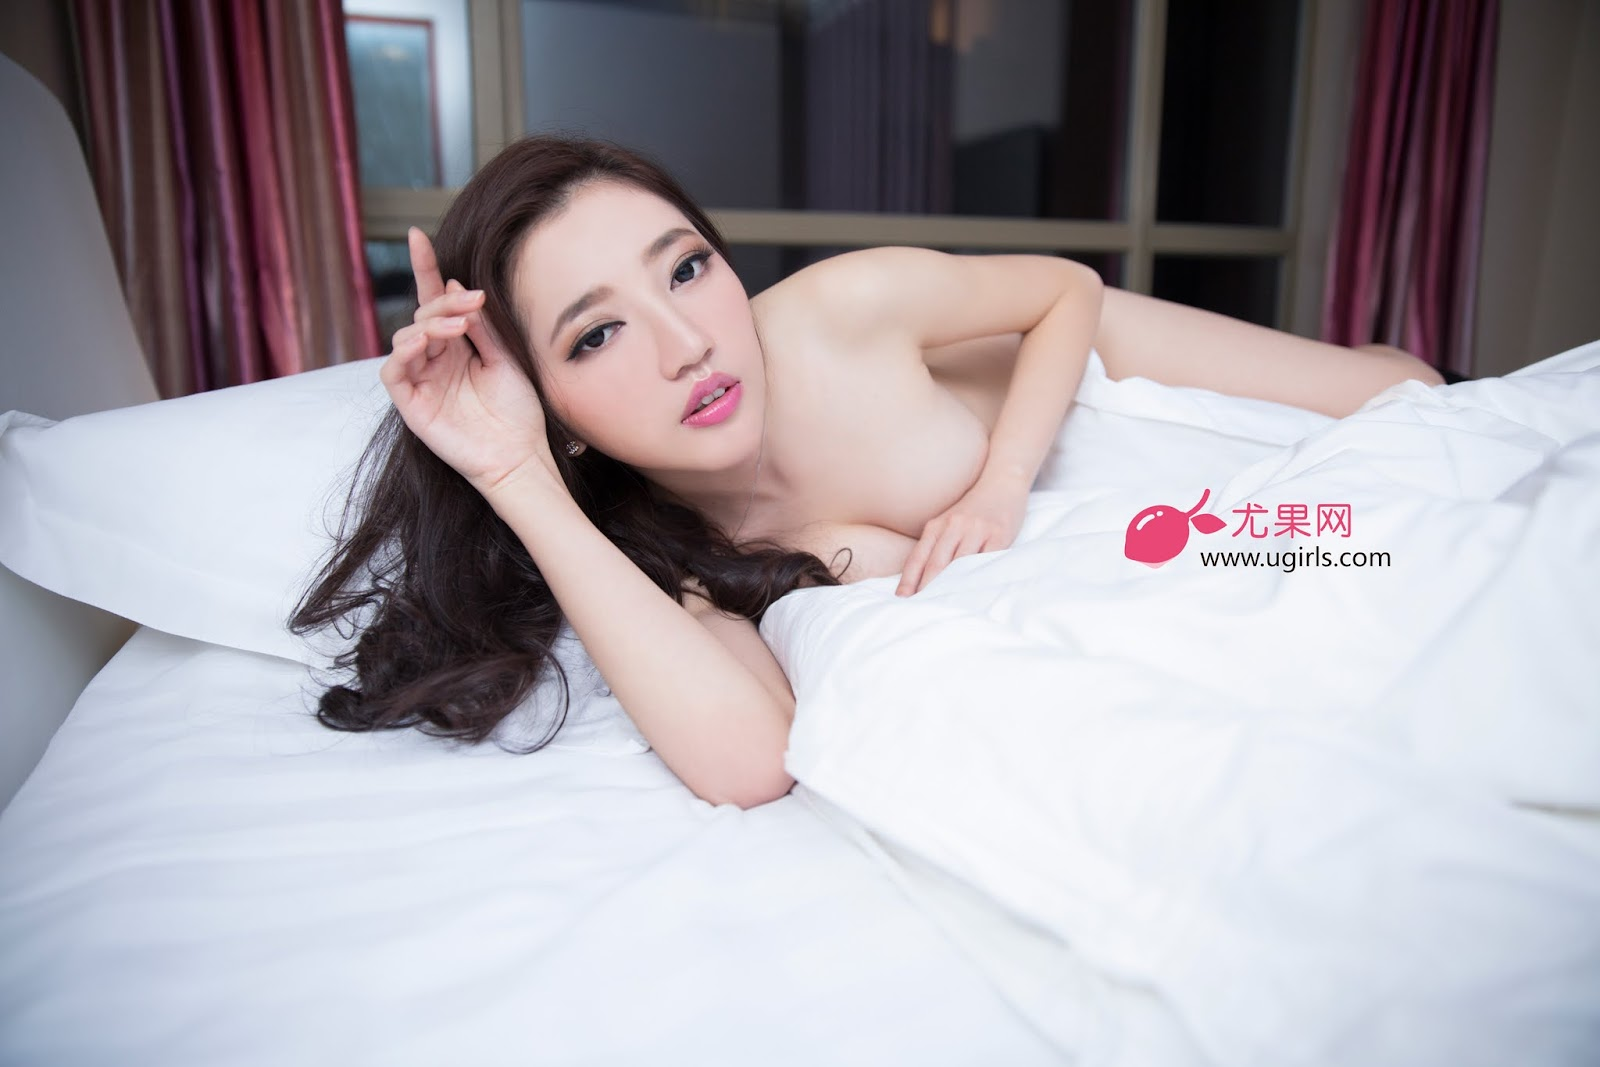 A14A5568 - Hot Model UGIRLS NO.8